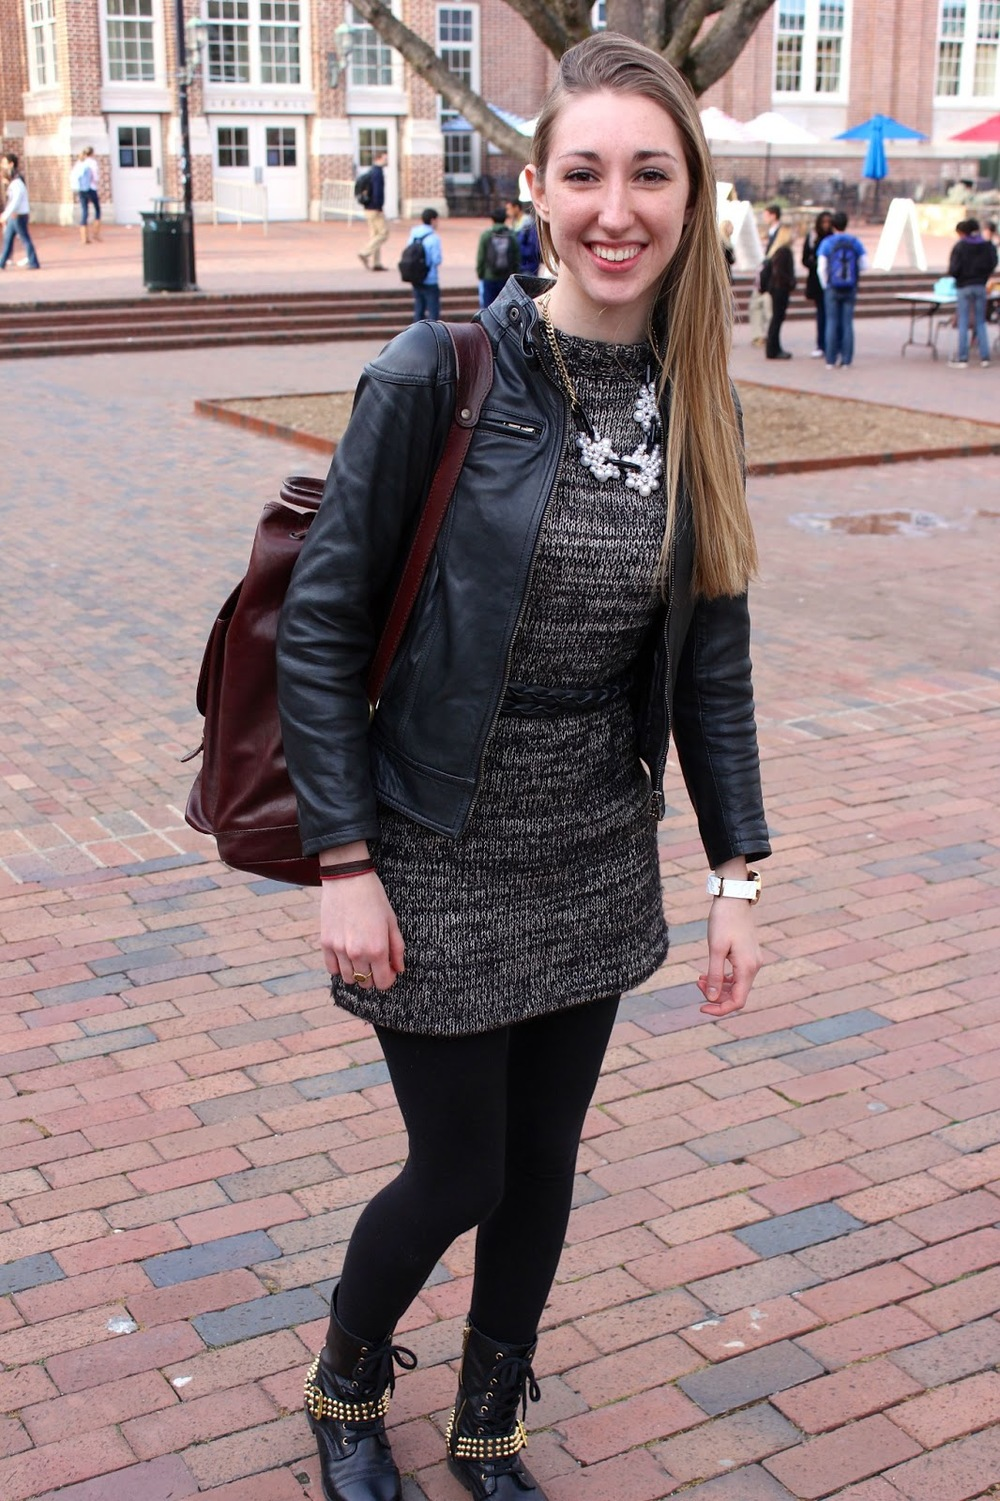 UNC Student Courtney wears a black and white interwoven dress under a black leather jacket and a clustered pearl necklace over black tights and golden studded black boots.